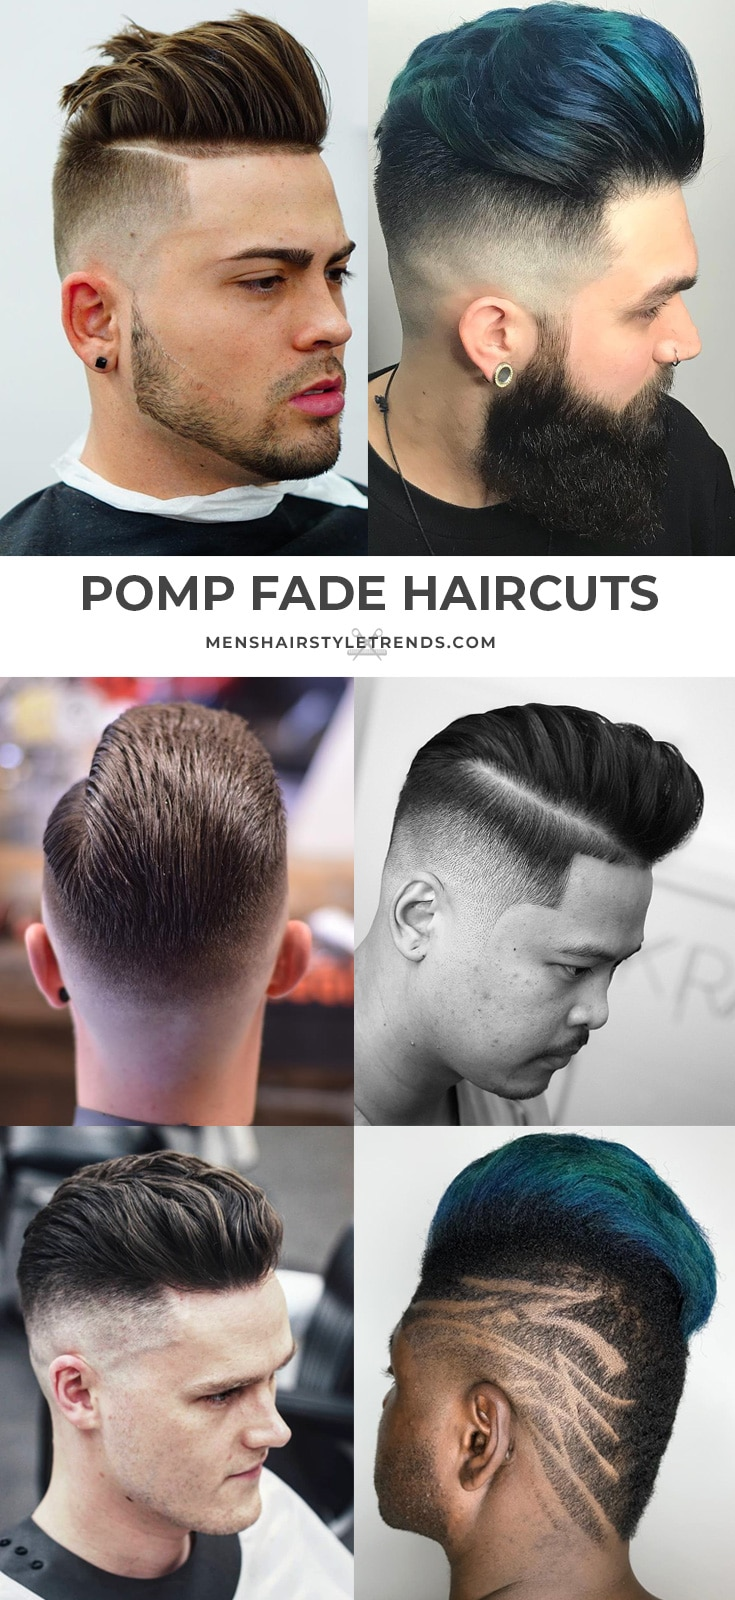 Pomp fade pompadour haircuts and hairstyles